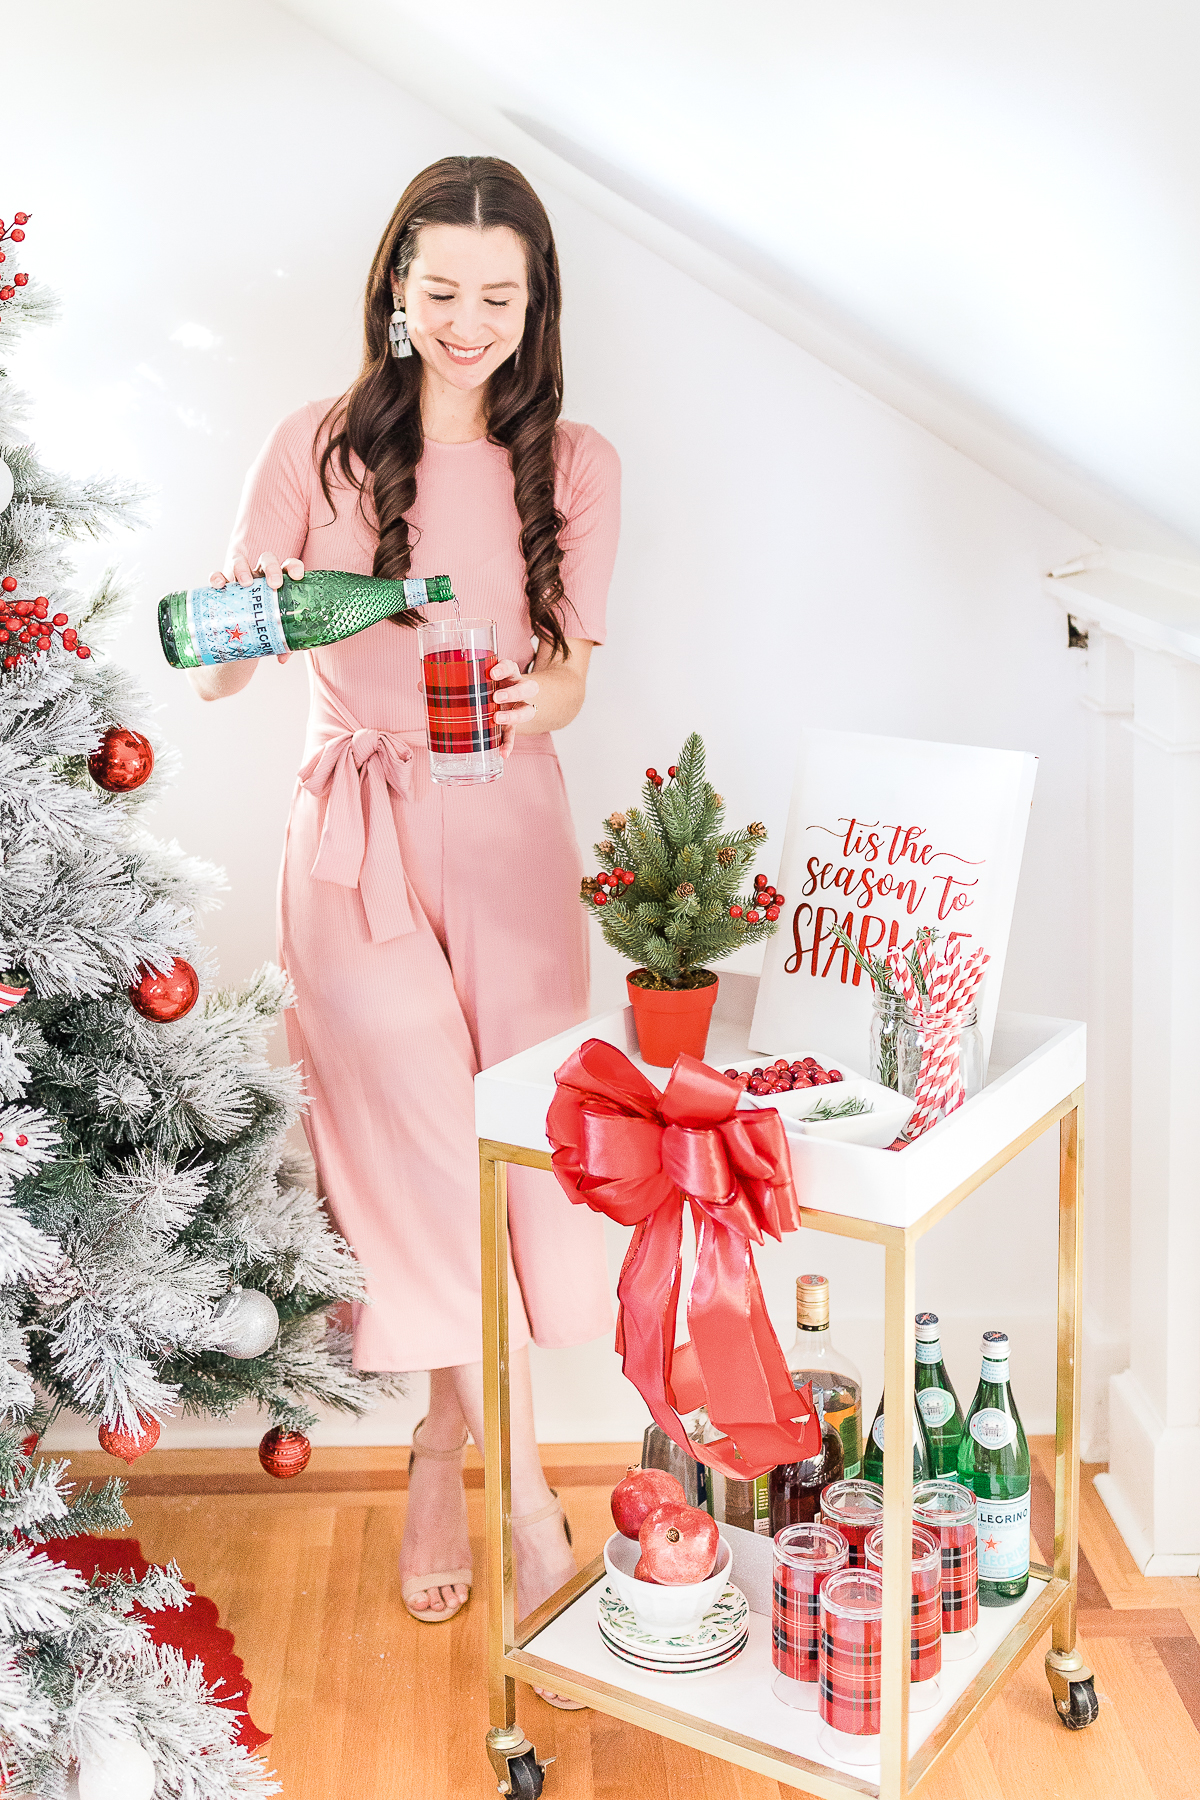 Christmas bar cart, Christmas bar cart styling ideas, holiday bar cart, holiday bar cart styling ideas, special edition Pellegrino bottle, popular lifestyle blogger Stephanie Ziajka, popular lifestyle blog Diary of a Debutante, rose pink jumpsuit, Amazon pink jumpsuit